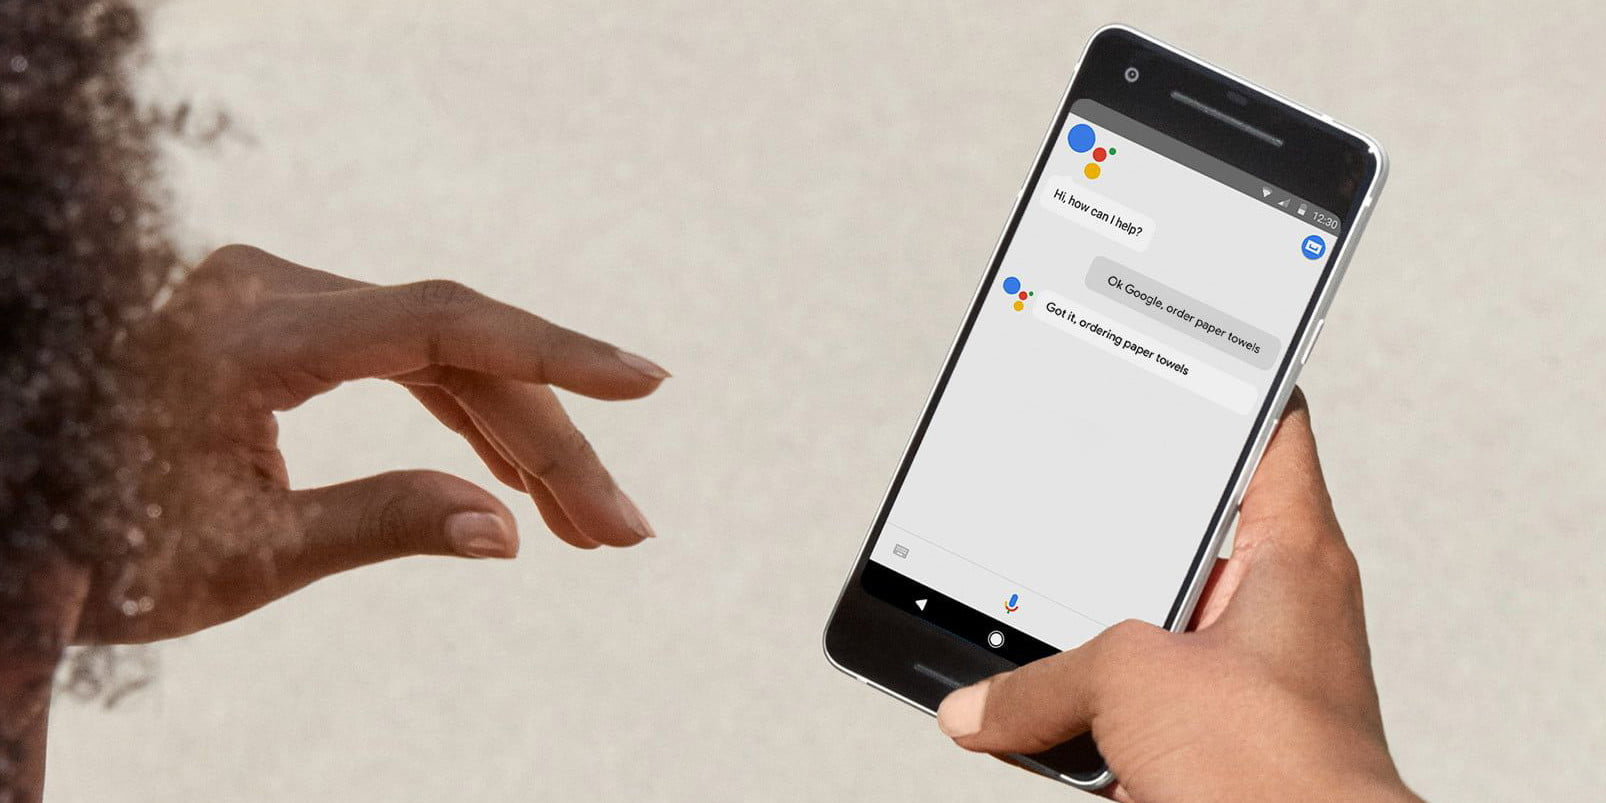 How to Change Google Assistant's Voice on Your Android or iOS Phone